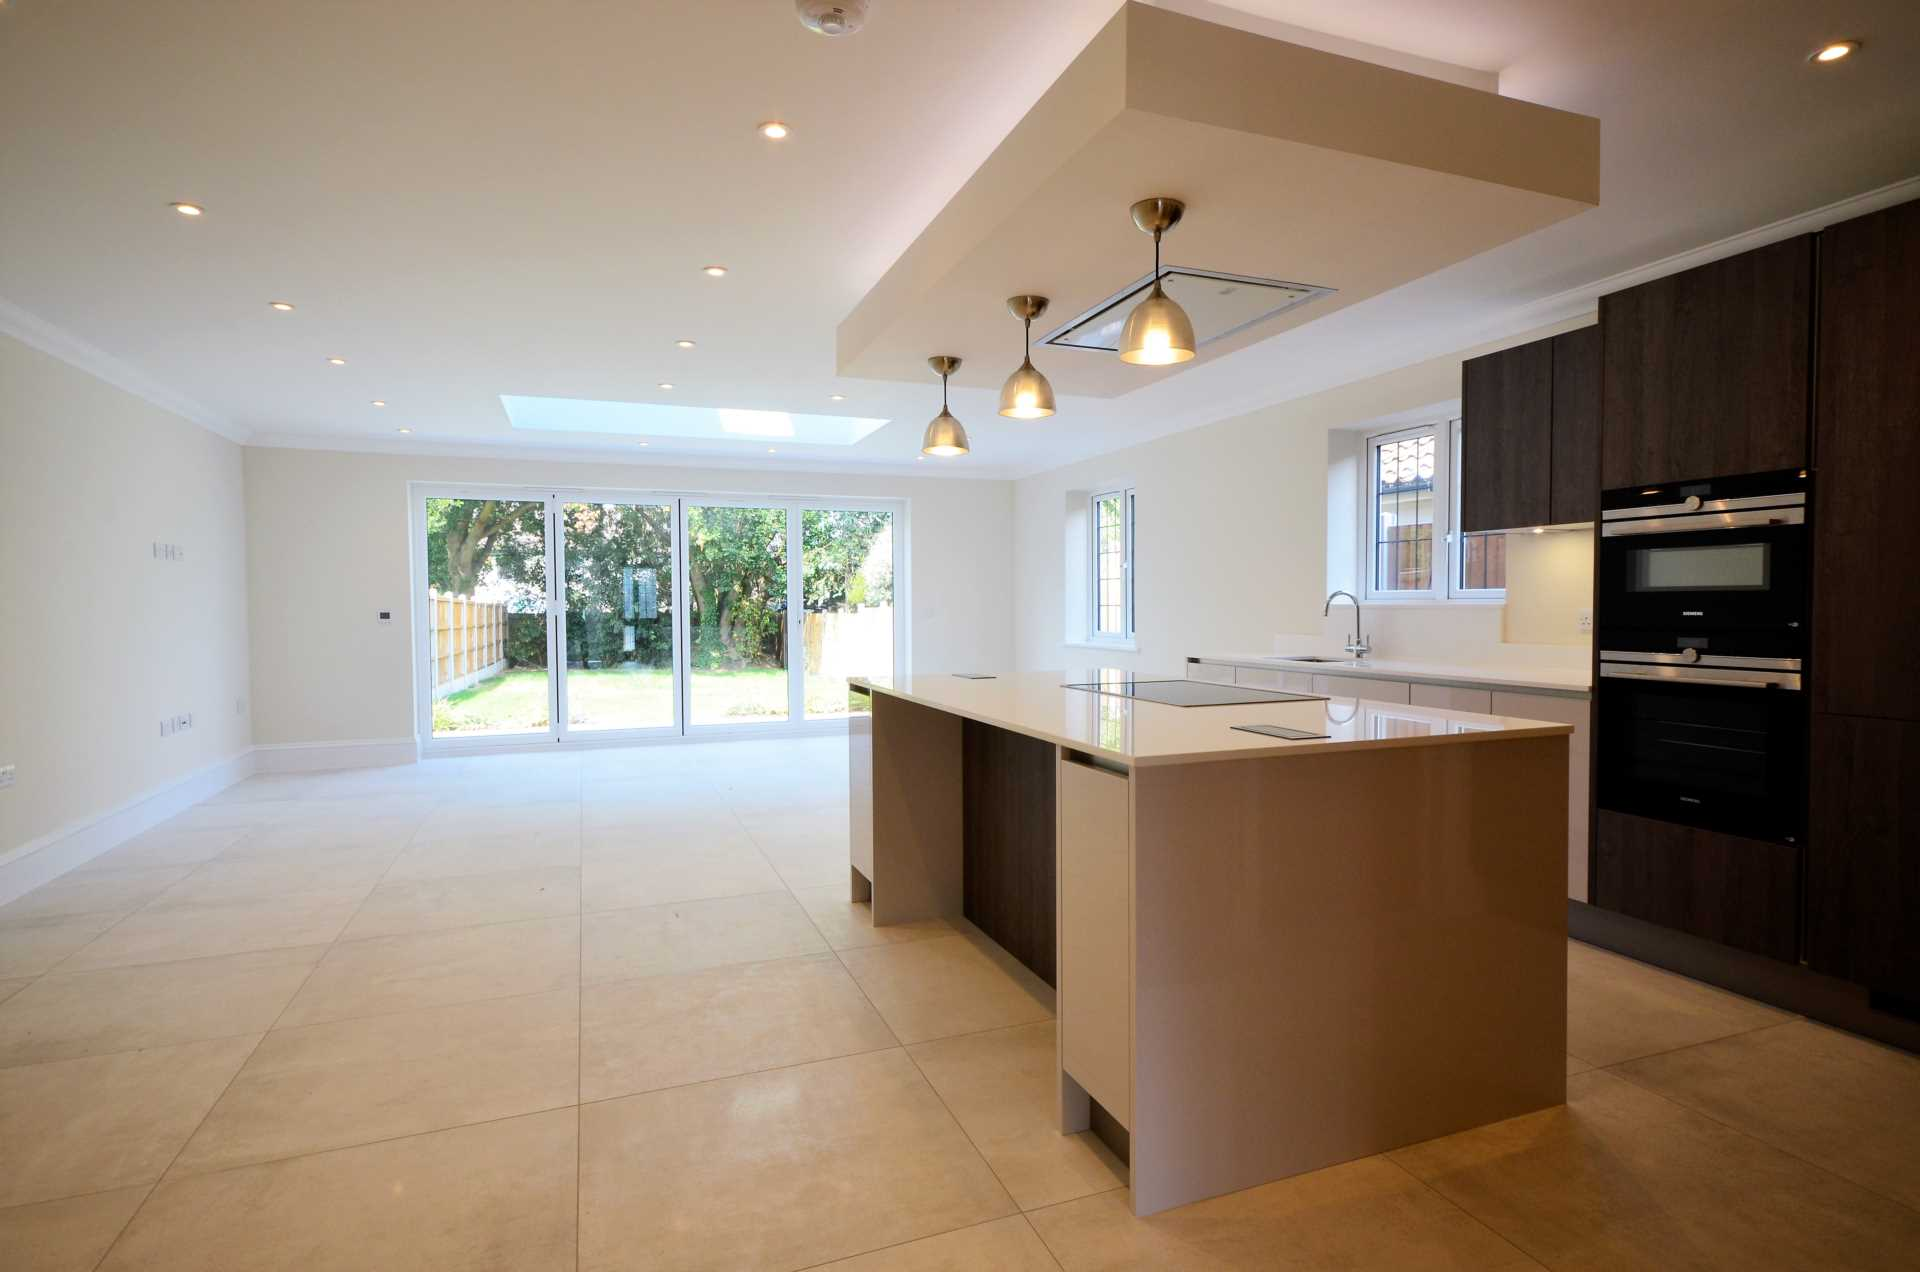 Norsey View Drive, Billericay, Image 3